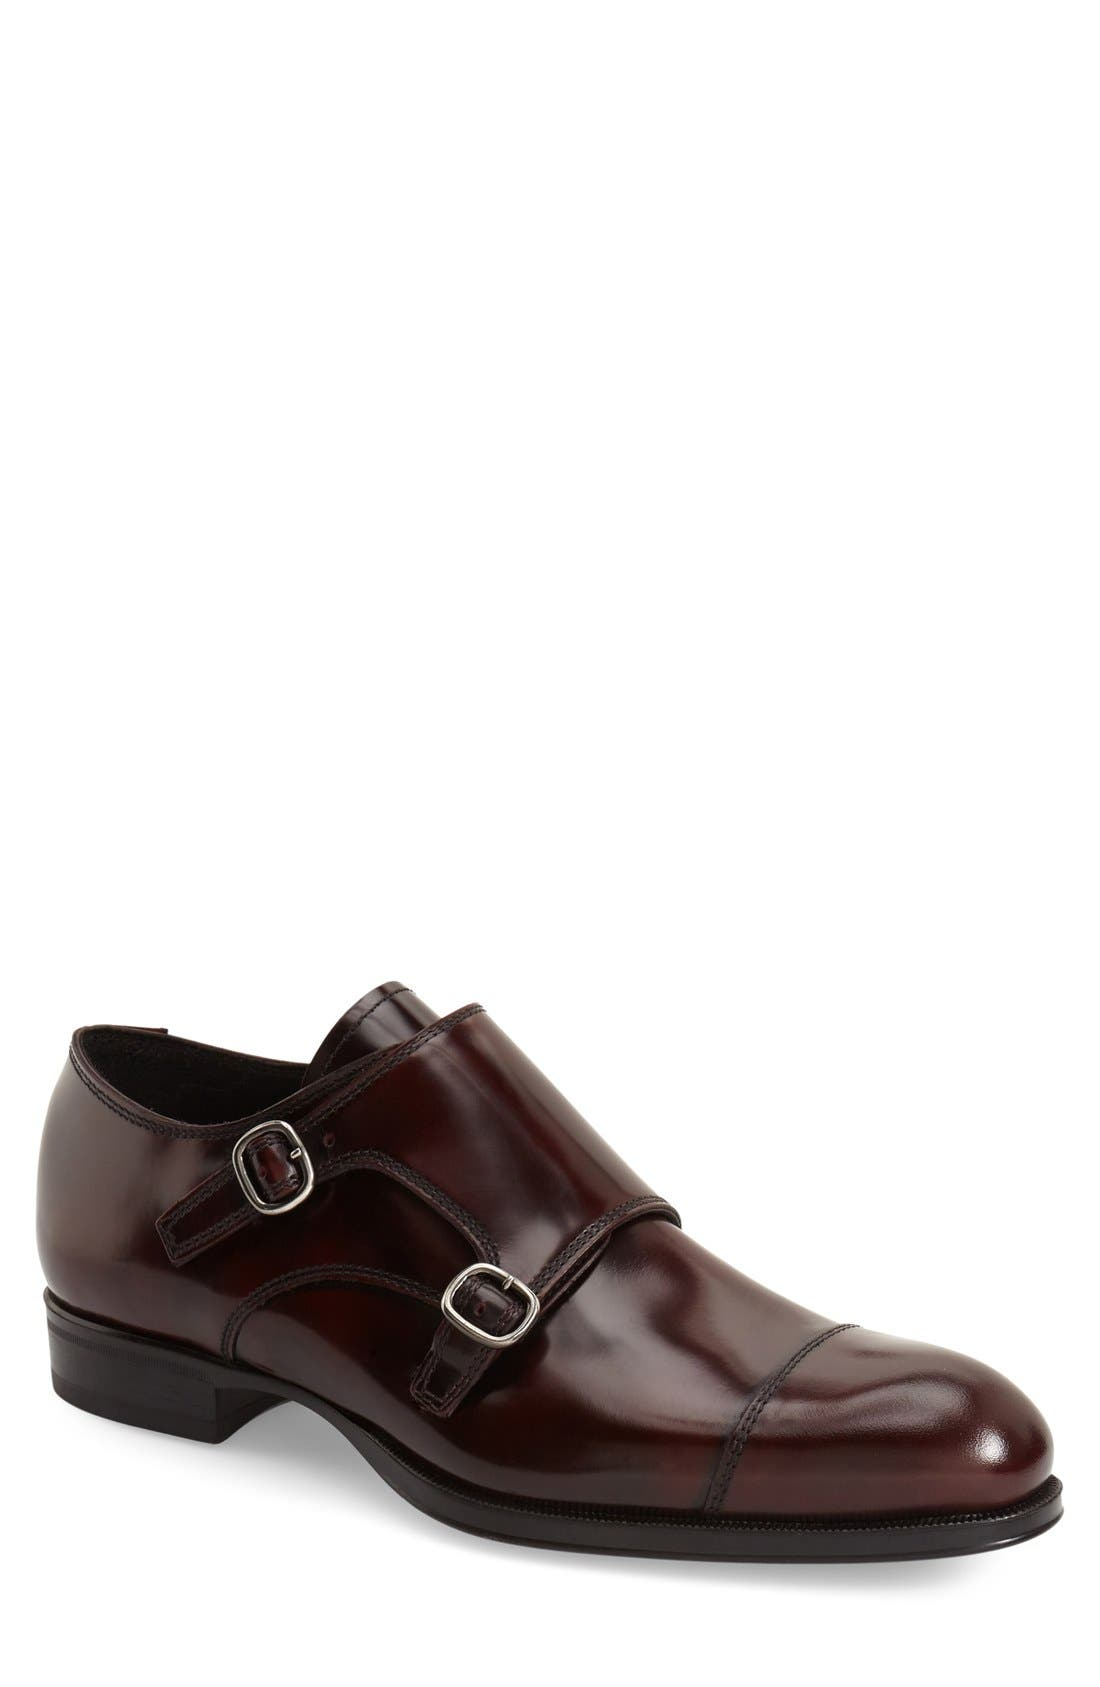 Alternate Image 1 Selected - To Boot New York 'Bailey' Double Monk Strap Shoe (Men)